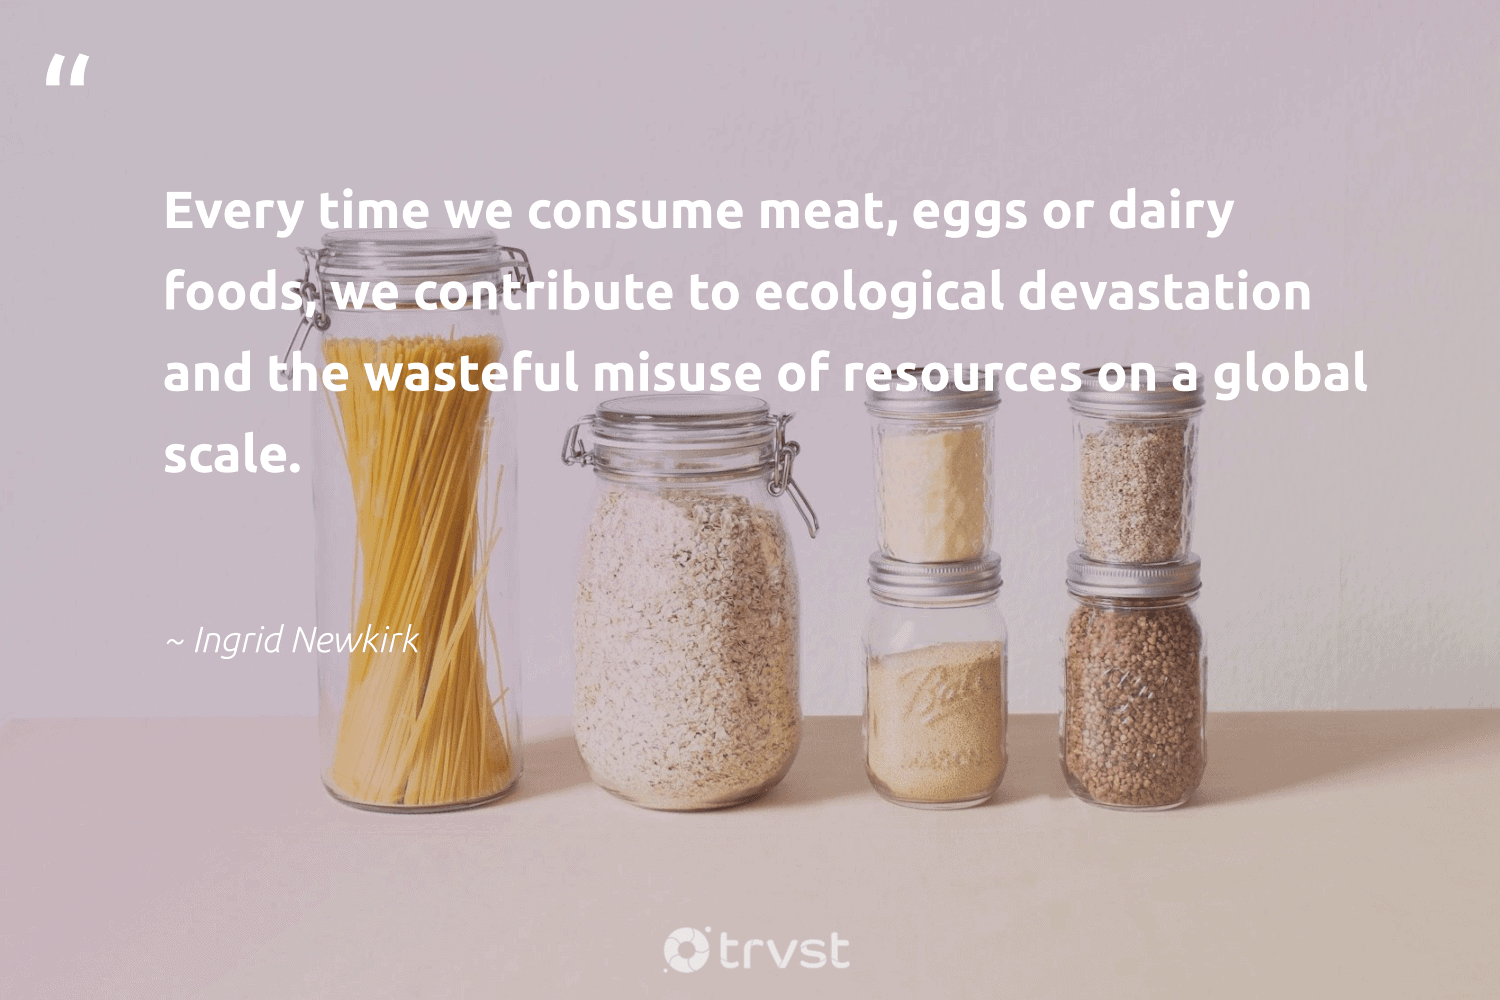 """""""Every time we consume meat, eggs or dairy foods, we contribute to ecological devastation and the wasteful misuse of resources on a global scale.""""  - Ingrid Newkirk #trvst #quotes #greenliving #impact #bethechange #thinkgreen #gogreen #changetheworld #fashion #planetearthfirst #sustainability #dotherightthing"""